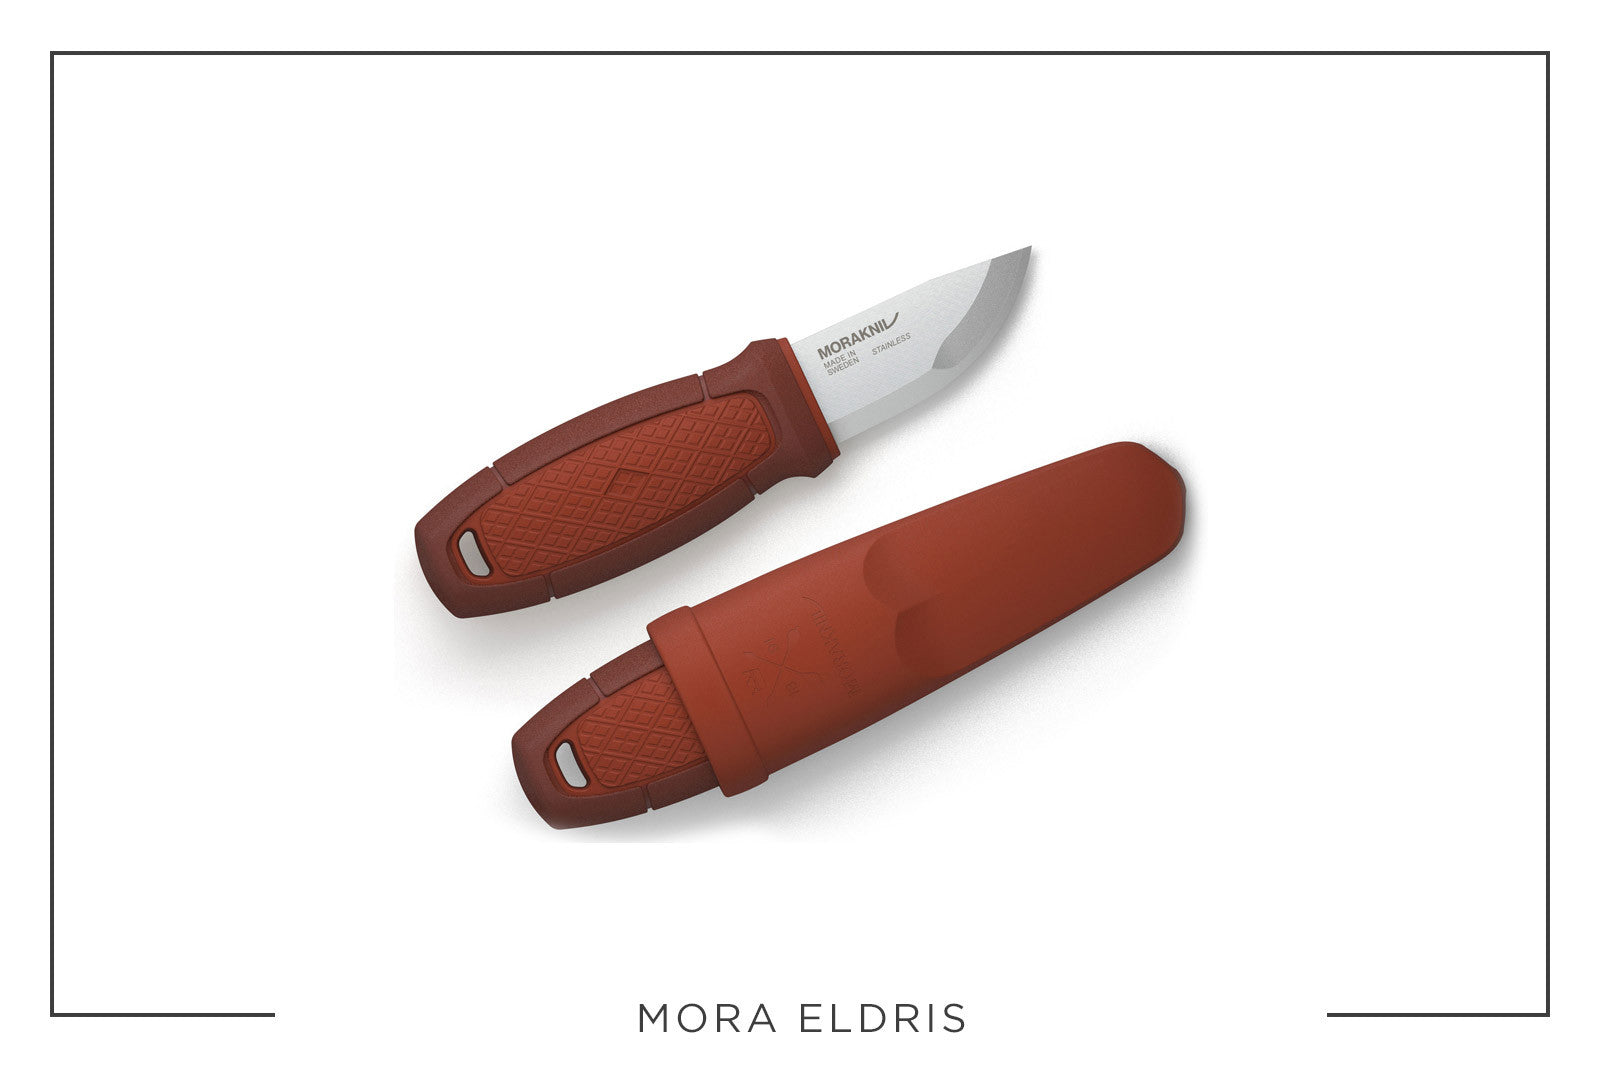 Best Camp Knives Mora Eldris